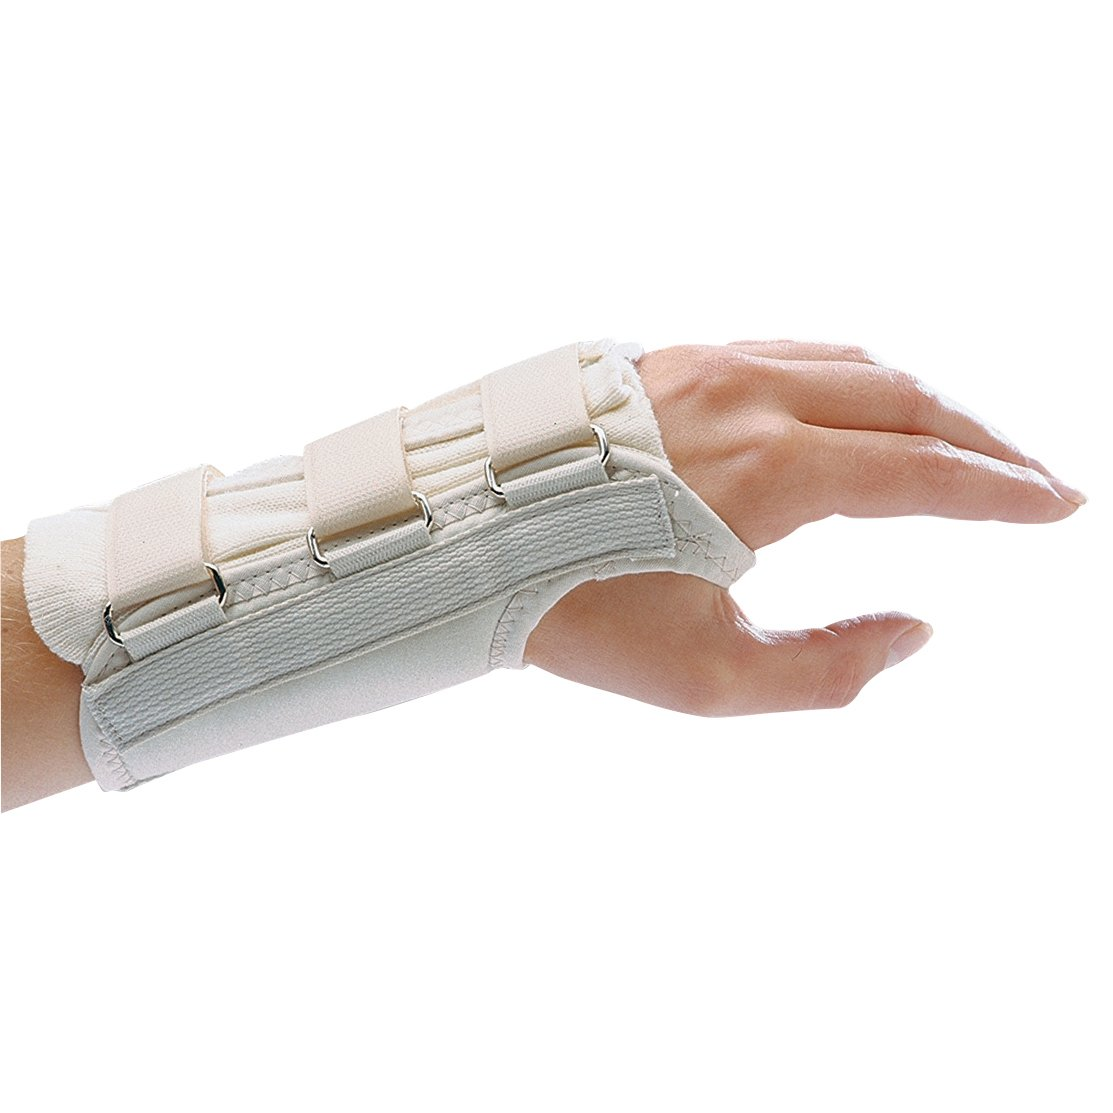 "Rolyan D-Ring Left Wrist Brace, Size Small Fits Wrists 5.75""-6.5"", 8.5"" Long Length Support, Beige Brace with Straps and D-Ring Connectors to Secure and Stabilize Hands and Wrists"